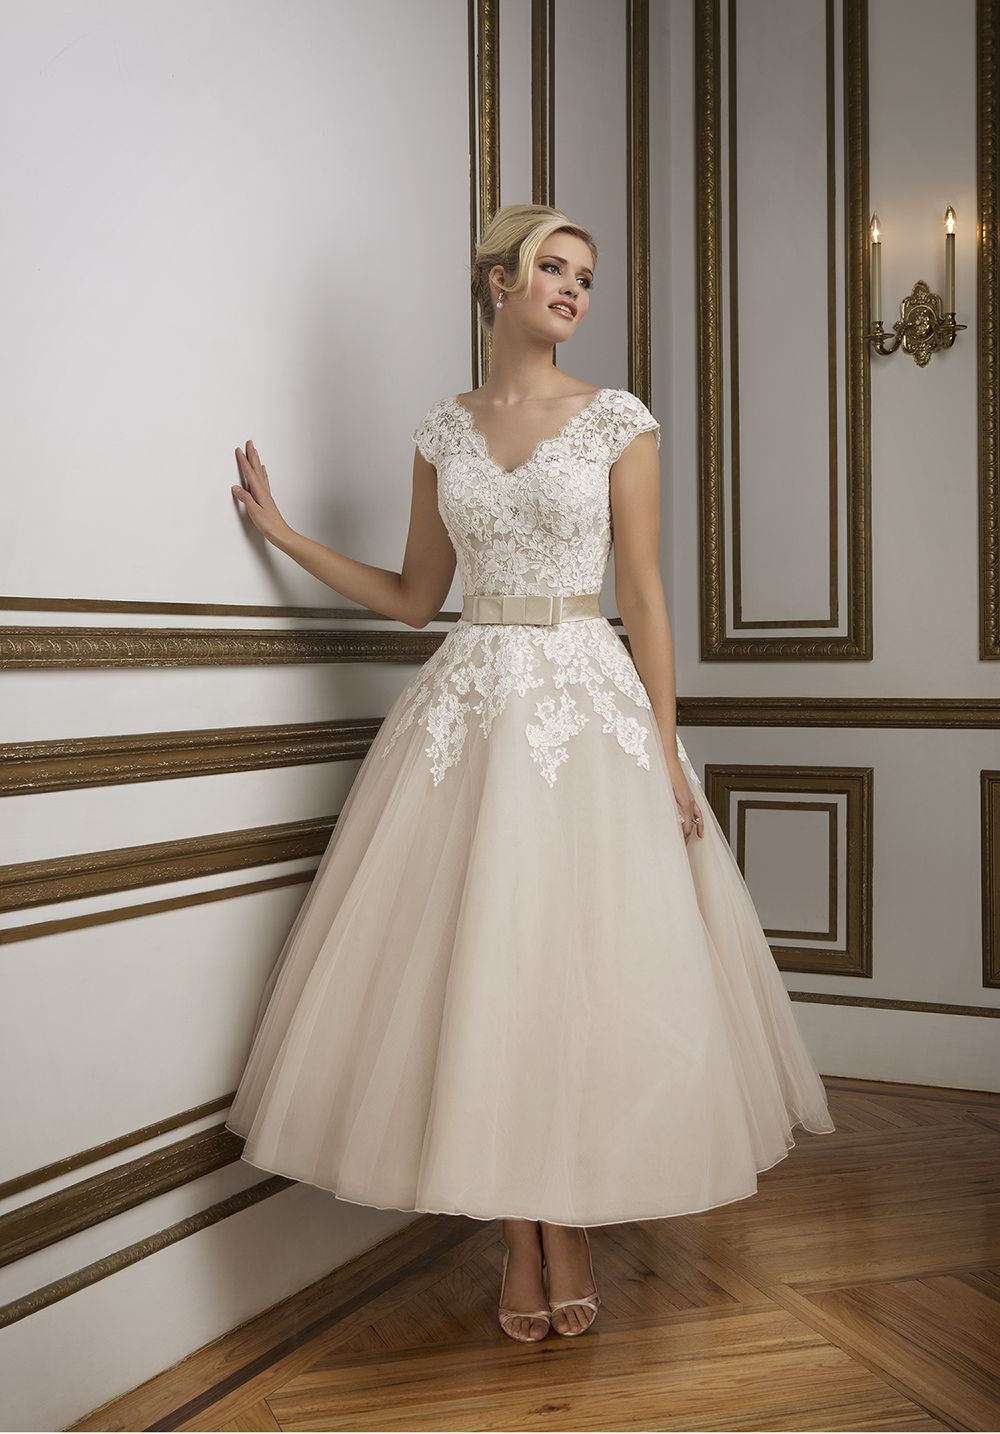 James alexander wedding dresses my fashion dresses pinterest